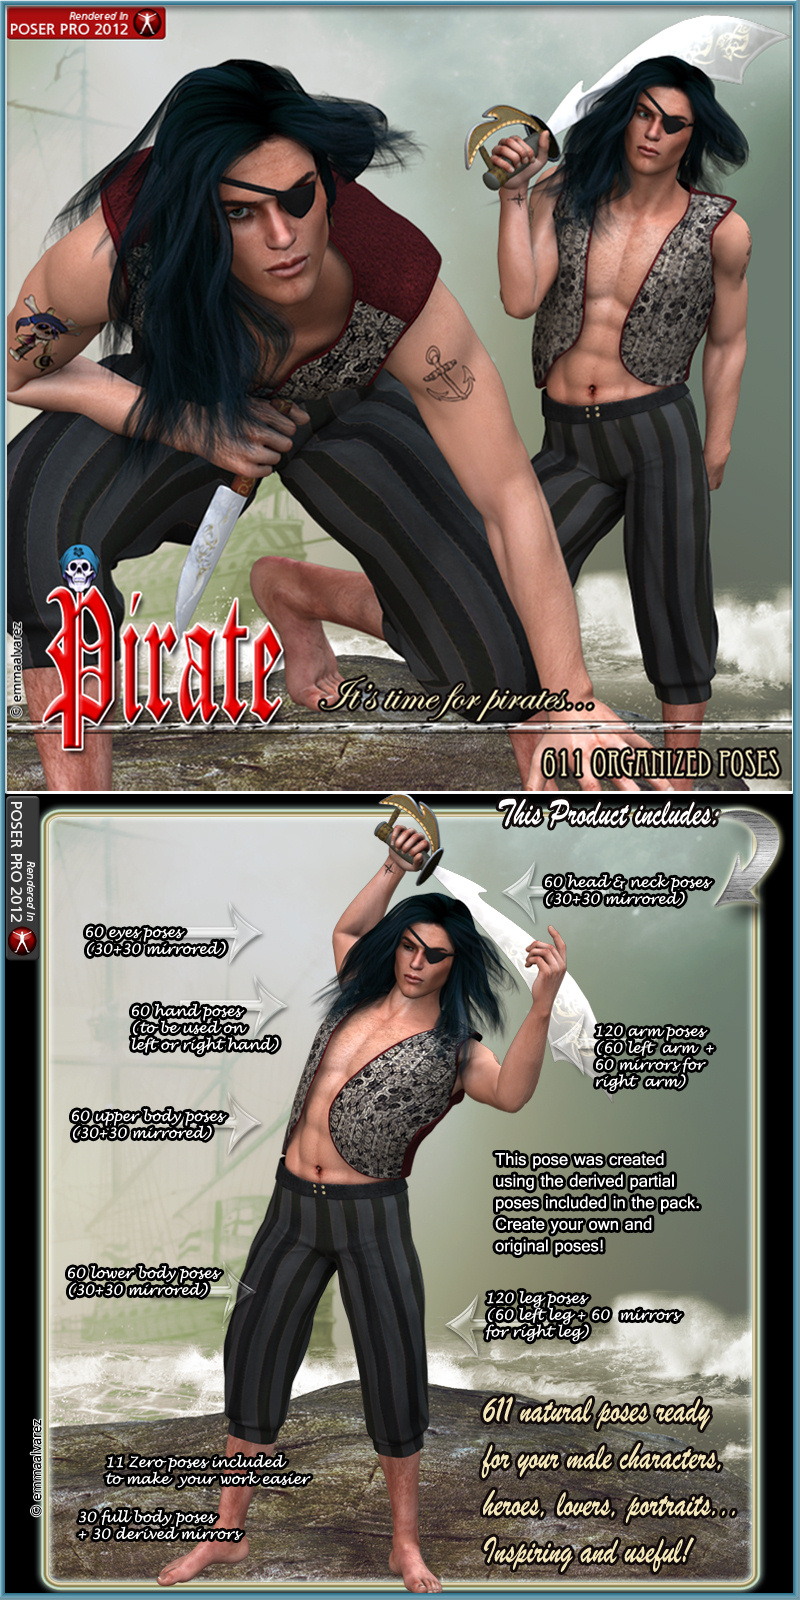 Pirate 611 Organized Poses For M4